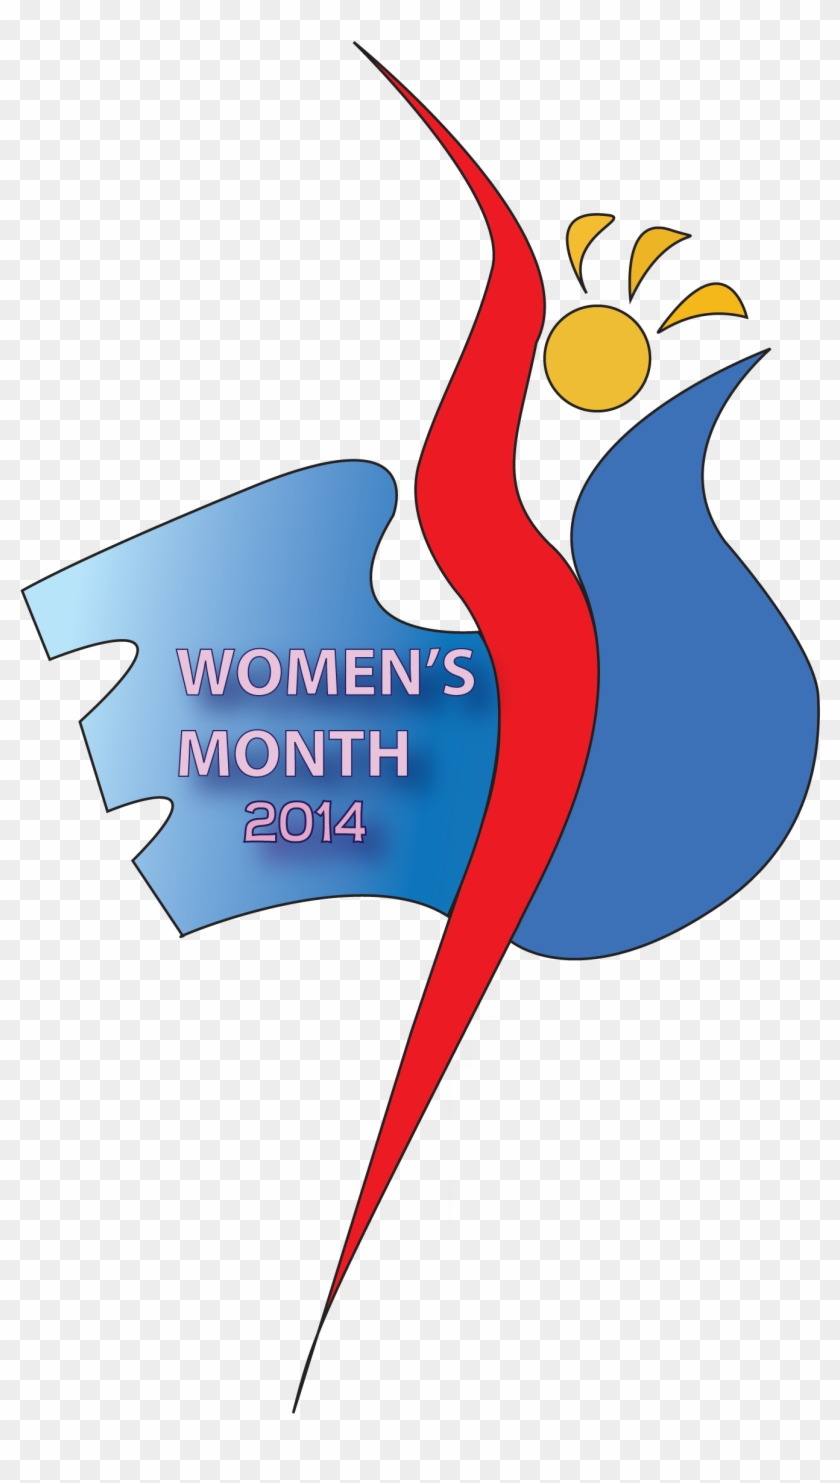 Logo For The For The 2014 Women's Month Celebration - Women's Month Celebration Logo #245762